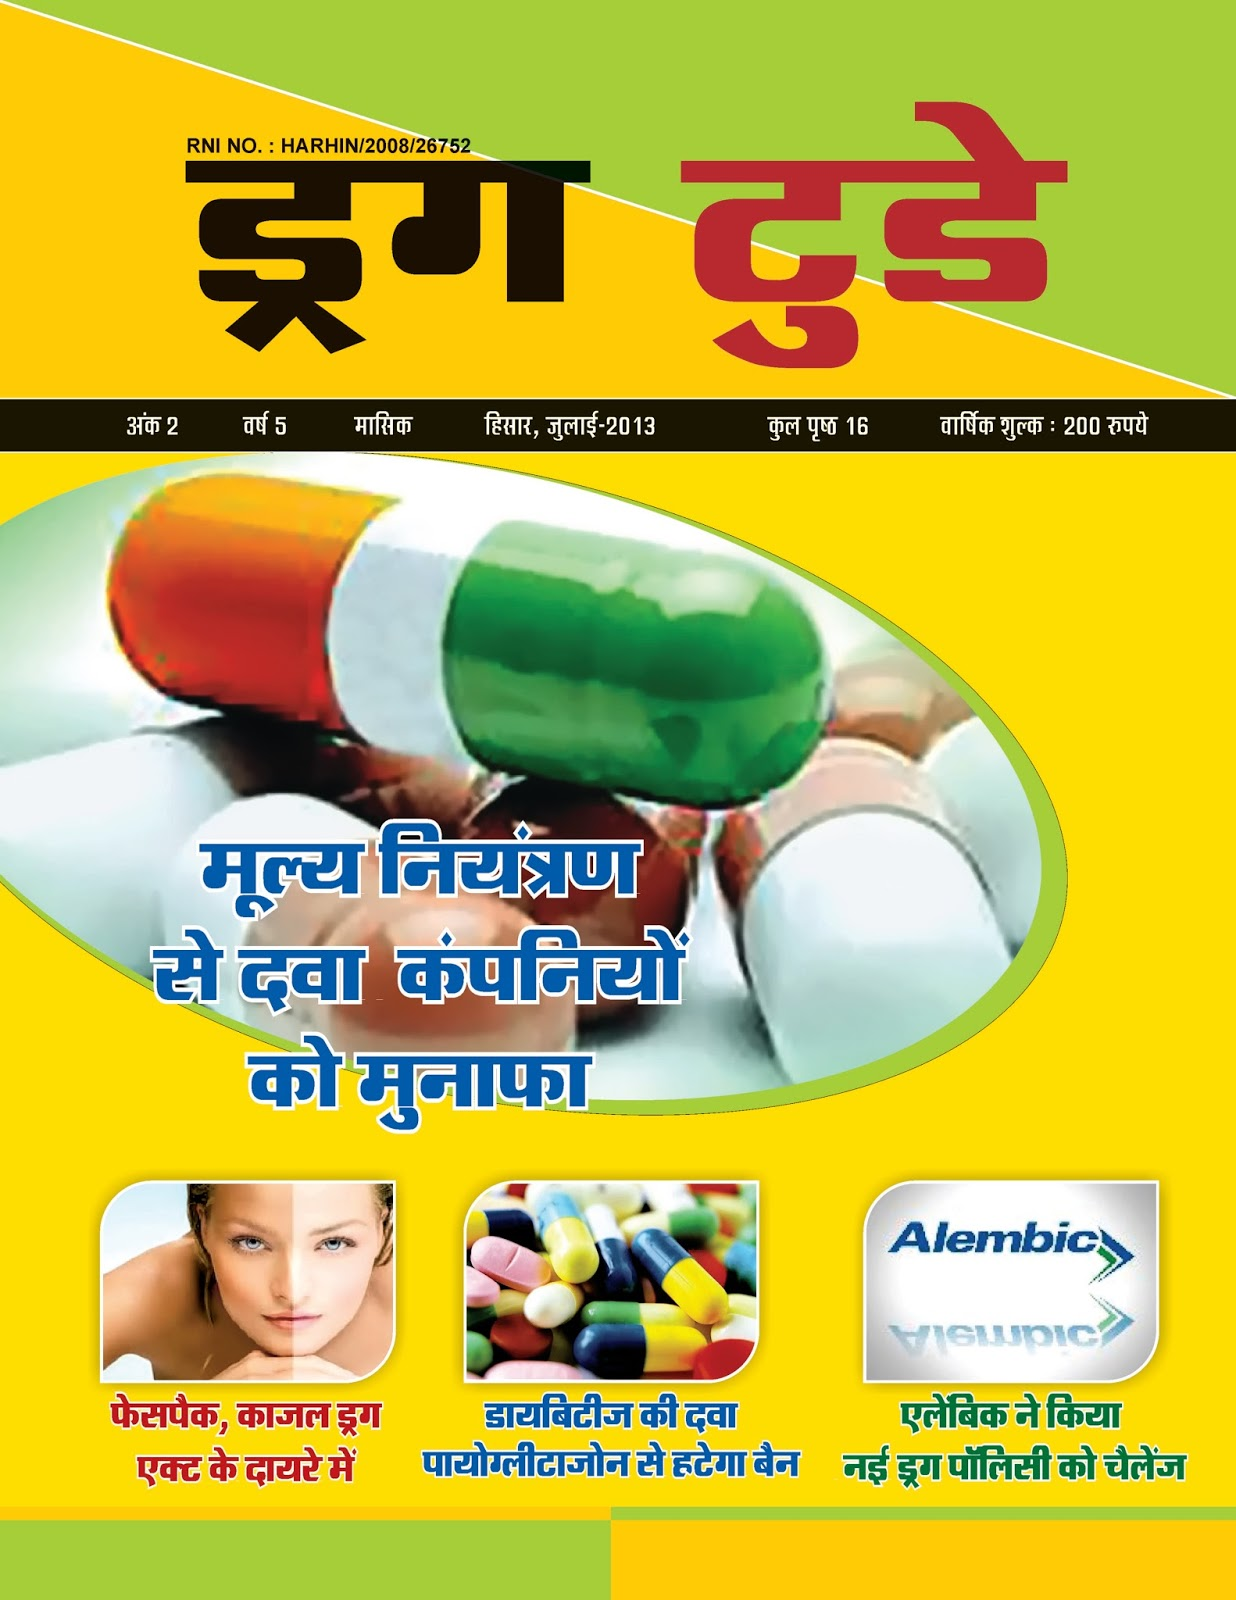 Imported viagra in india